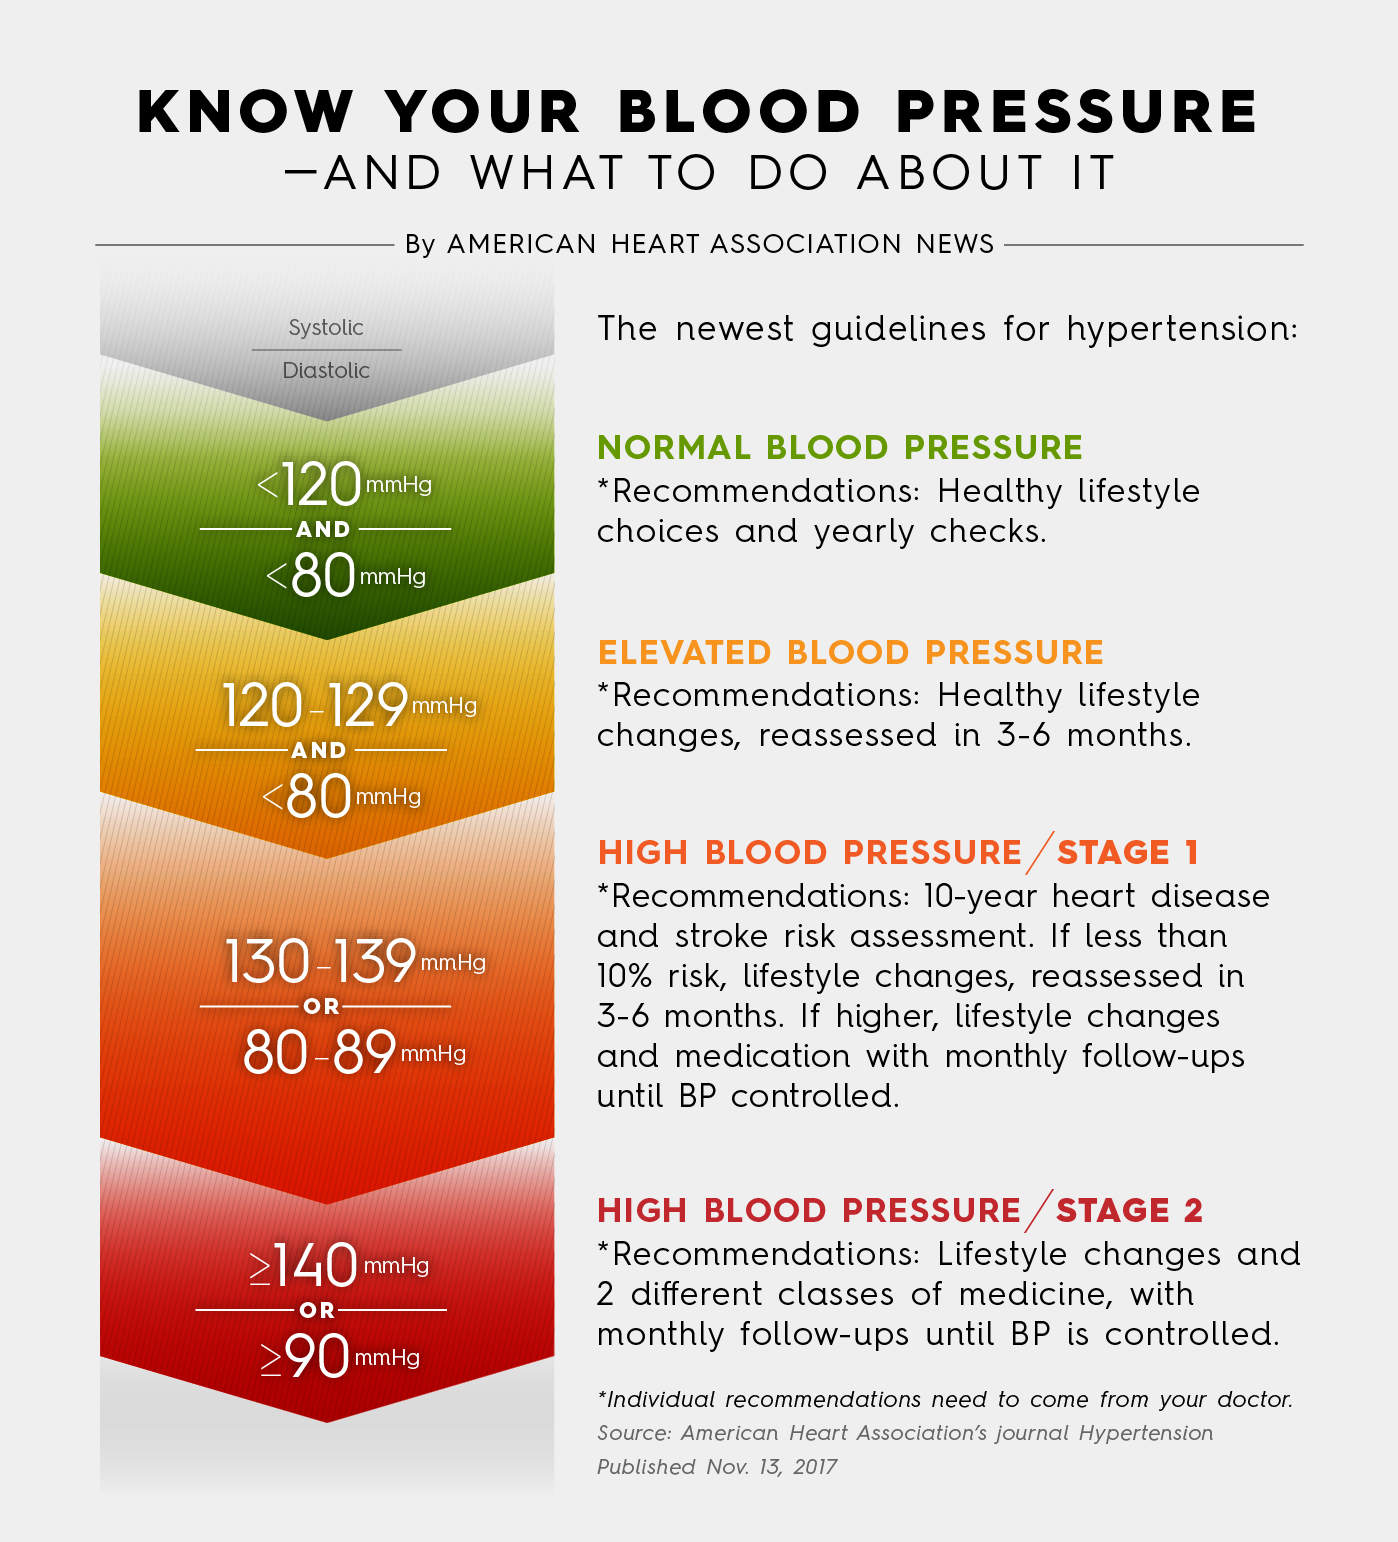 Treatment of High Blood Pressure recommendations